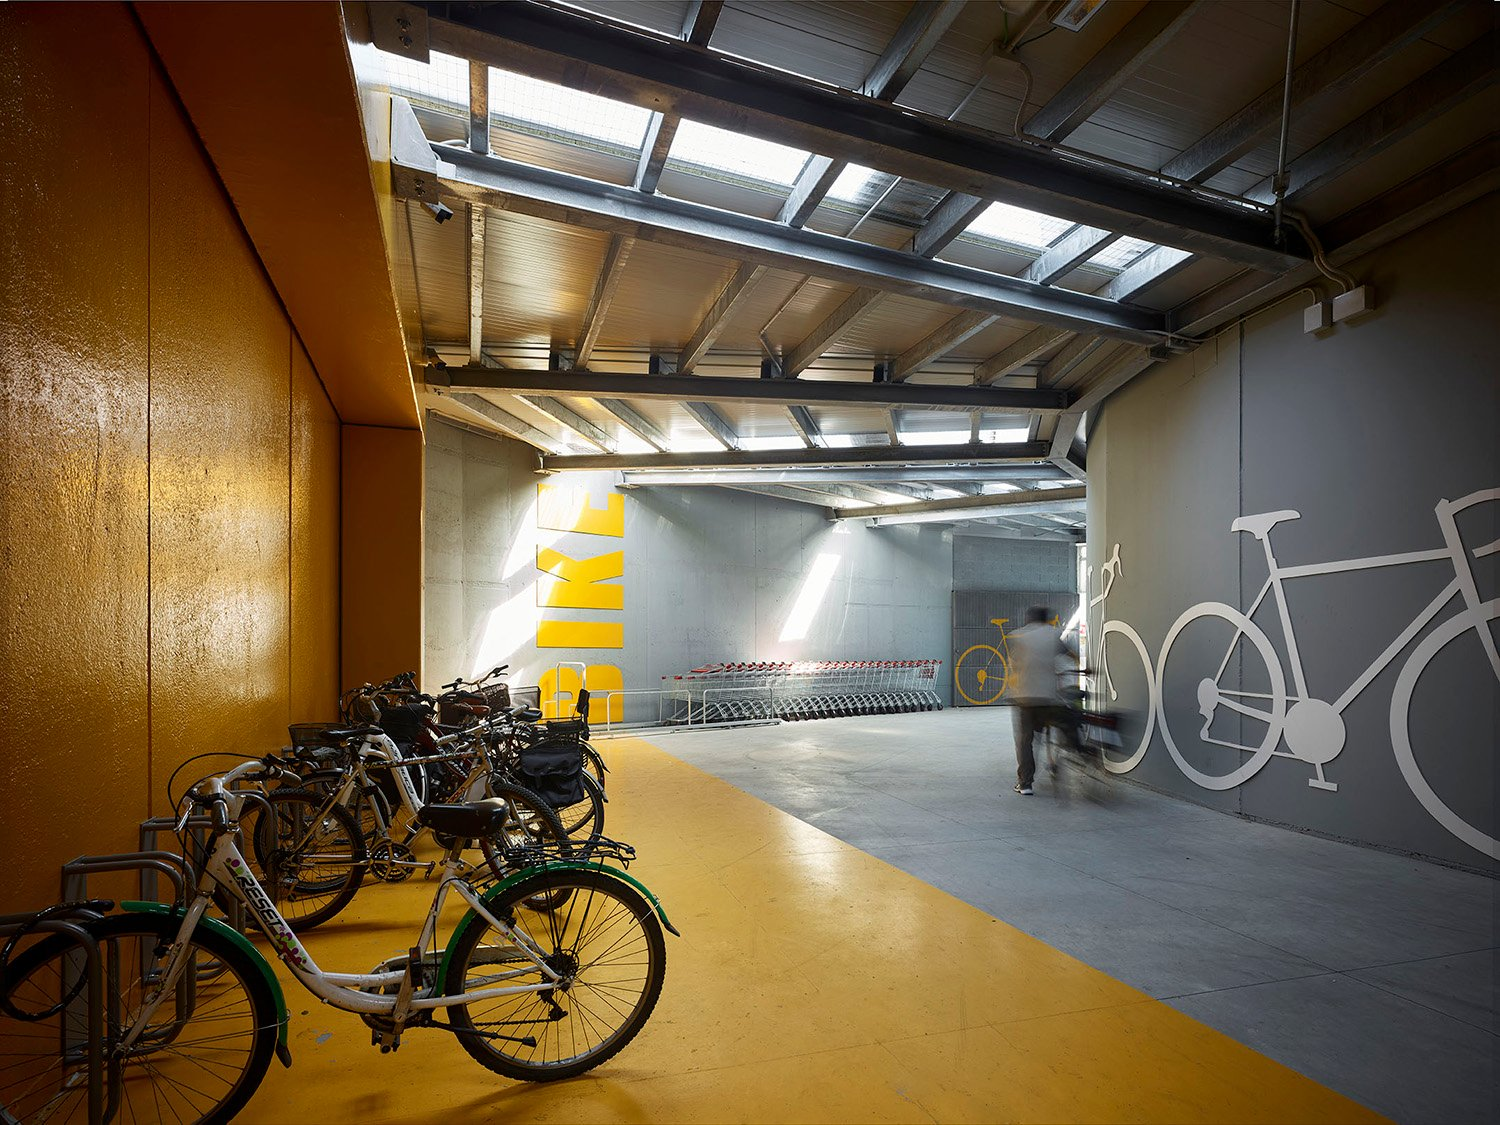 The covered space for parking and recharging bicycles Pietro Savorelli